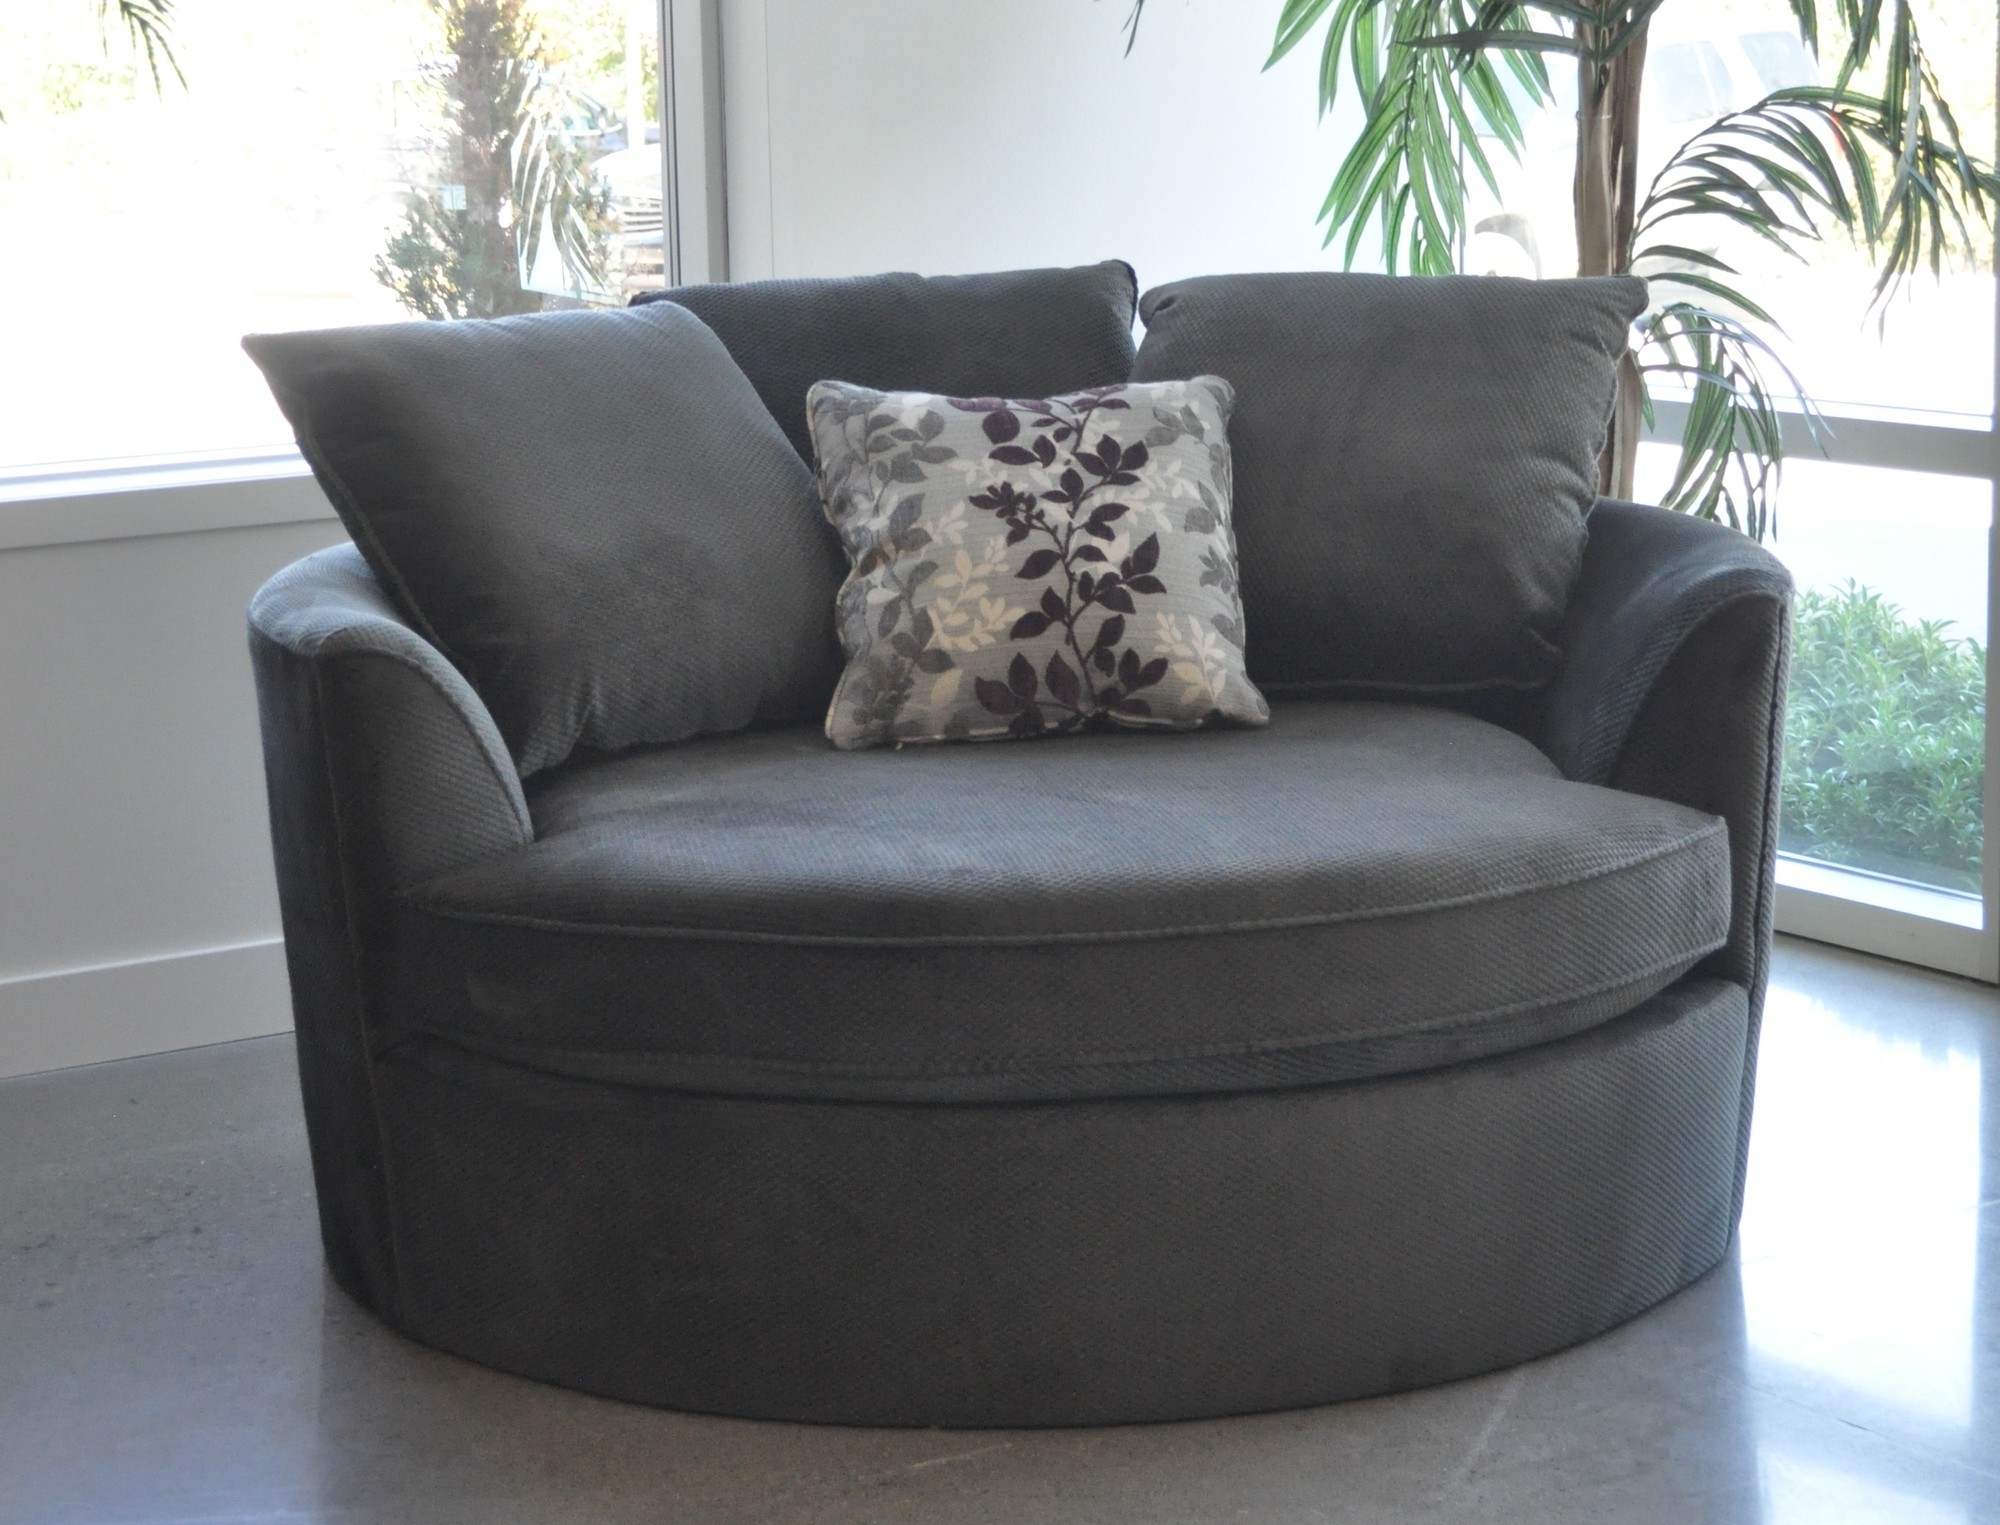 Big Round Sofa Chairs Within Fashionable Sofa : Round Sofa Outdoor Furniture Round Sofa Chair Uk Large (View 7 of 15)